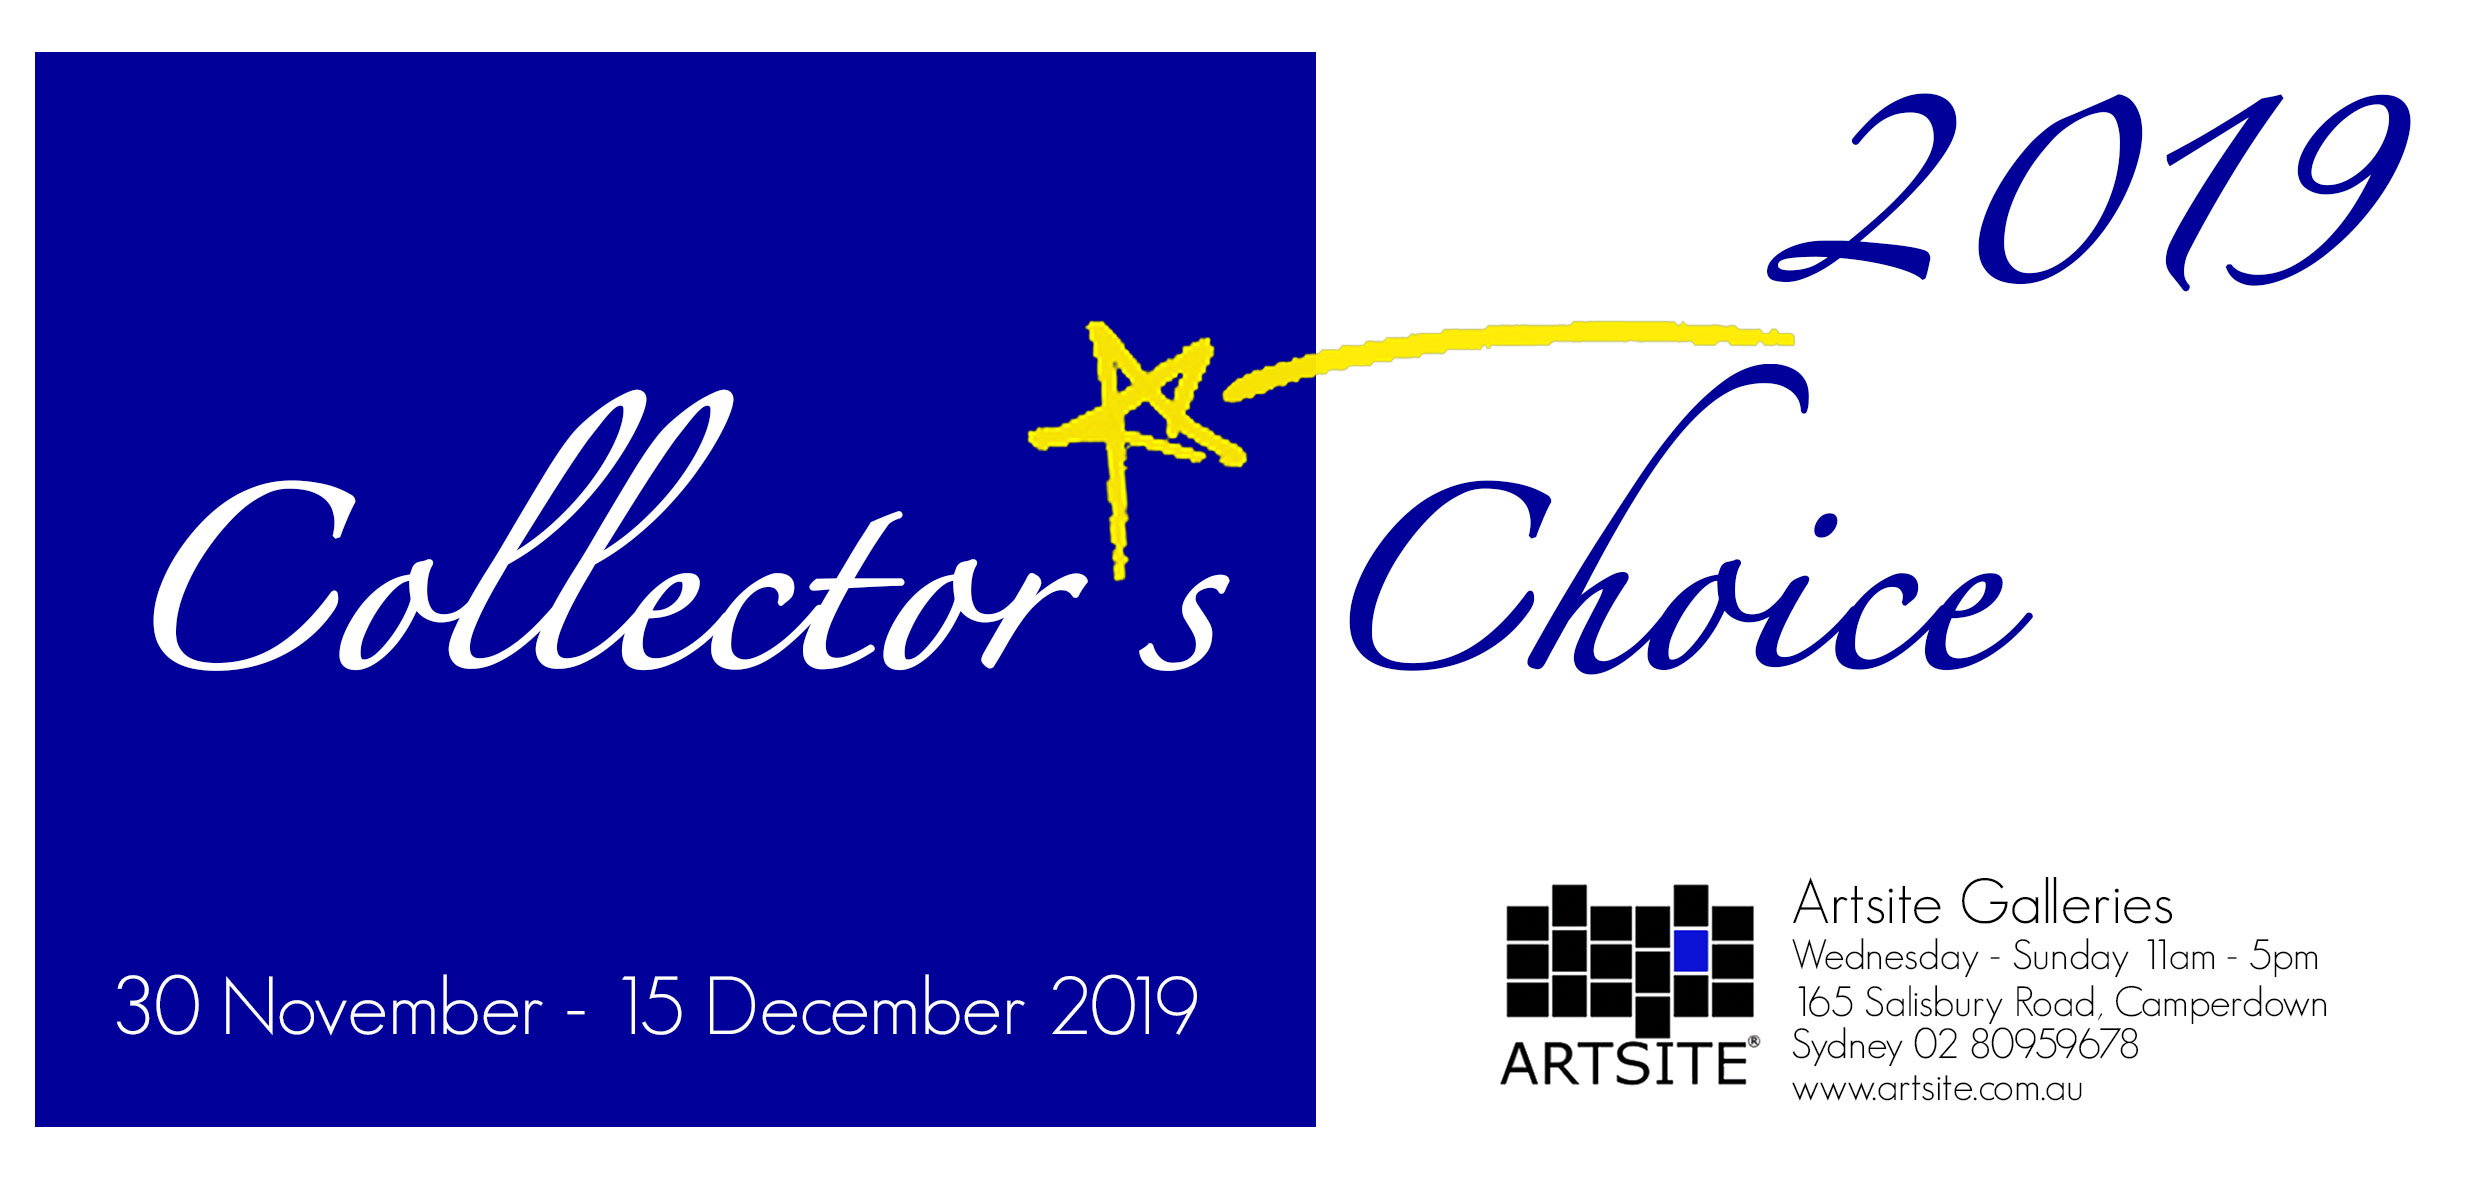 Artsite Gallery Exhibition | Collectors Choice 2019 | Gallery and Invited Artists | 31 November - 15 December 2019 | Opening event 3-5pm Sunday 01 December 2019 | All Welcome.